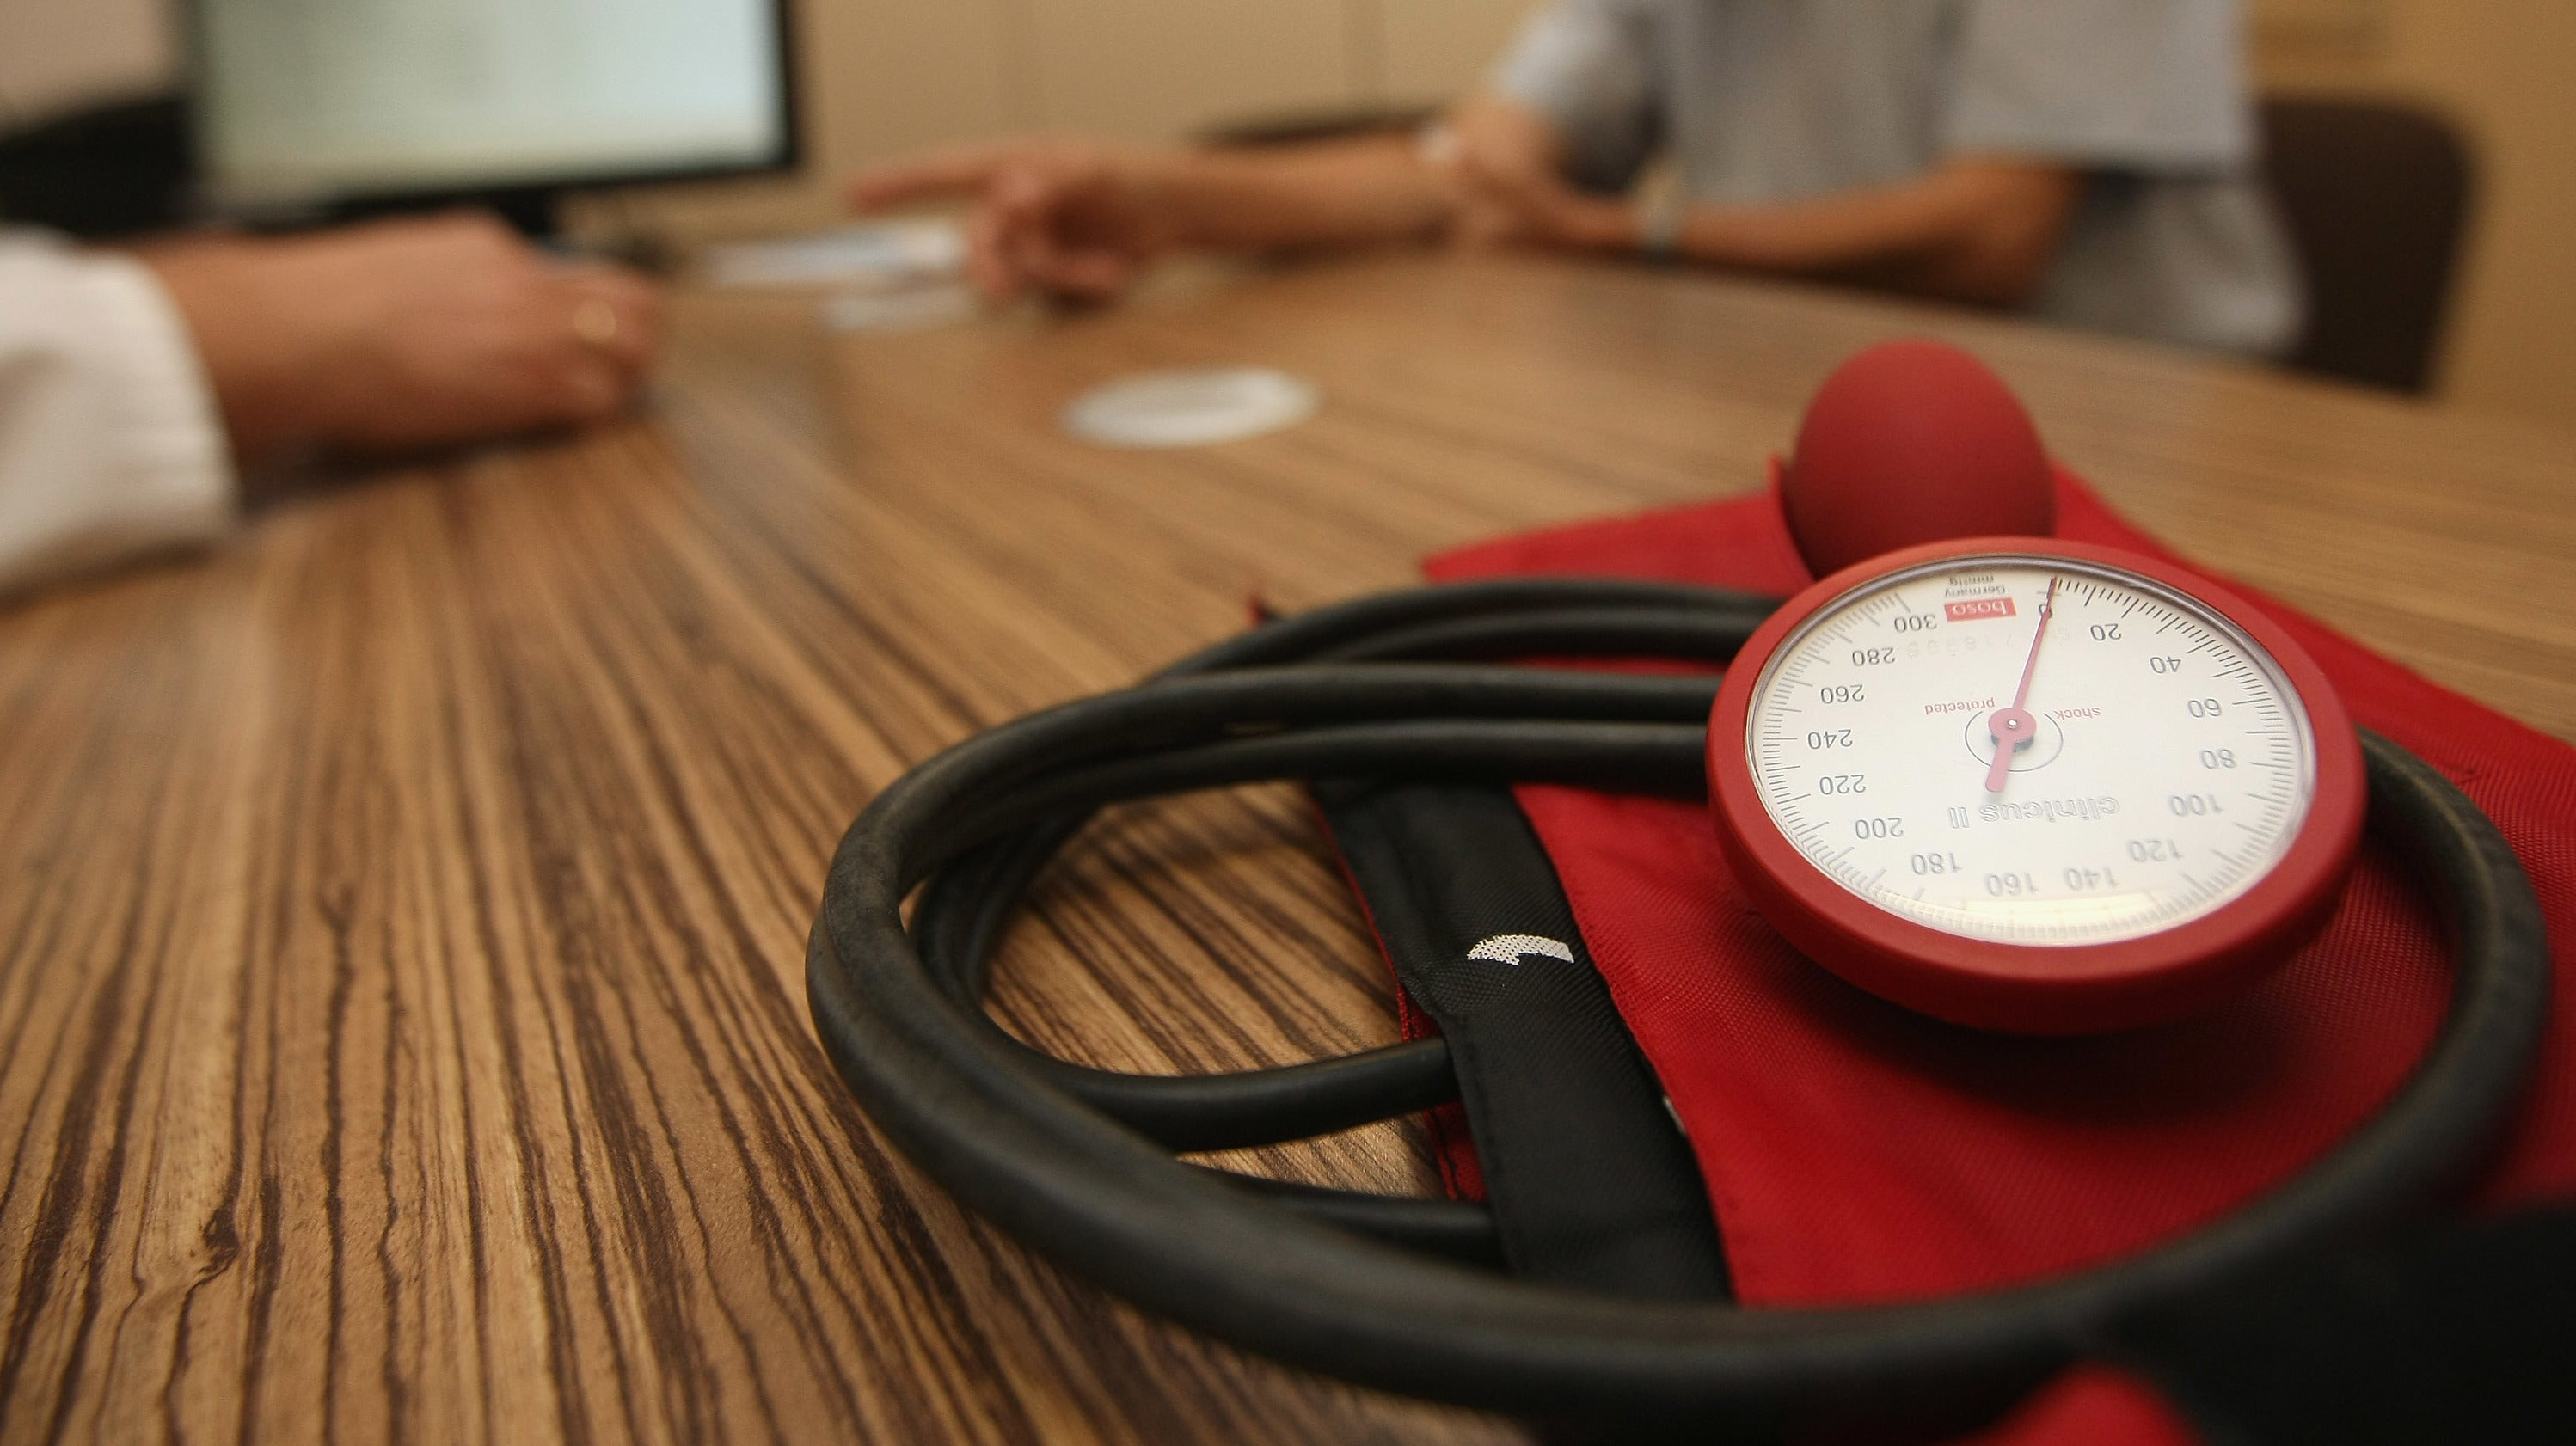 Major New Study Finds Lowering Blood Pressure Can Prevent Cognitive Decline, But Questions Remain